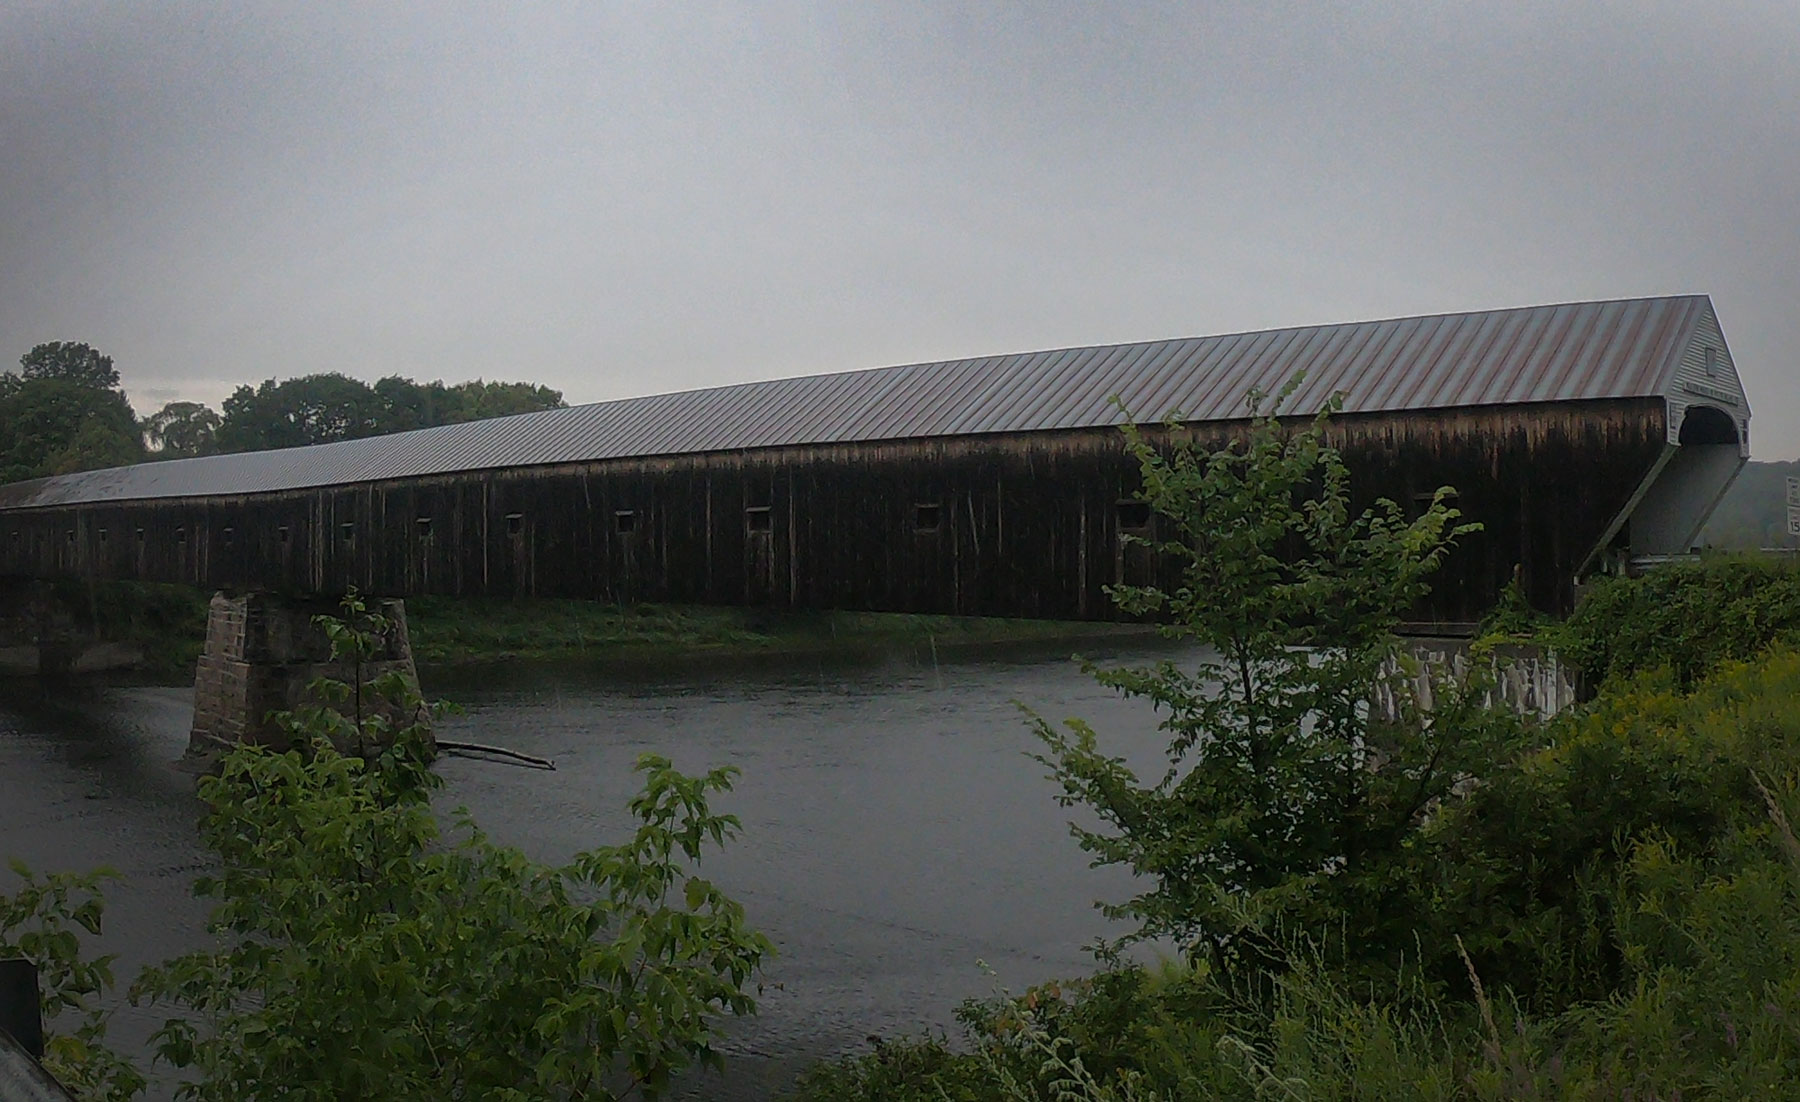 Exterior view of Cornish-Windsor Covered Bridge, connecting Vermont to New Hampshire